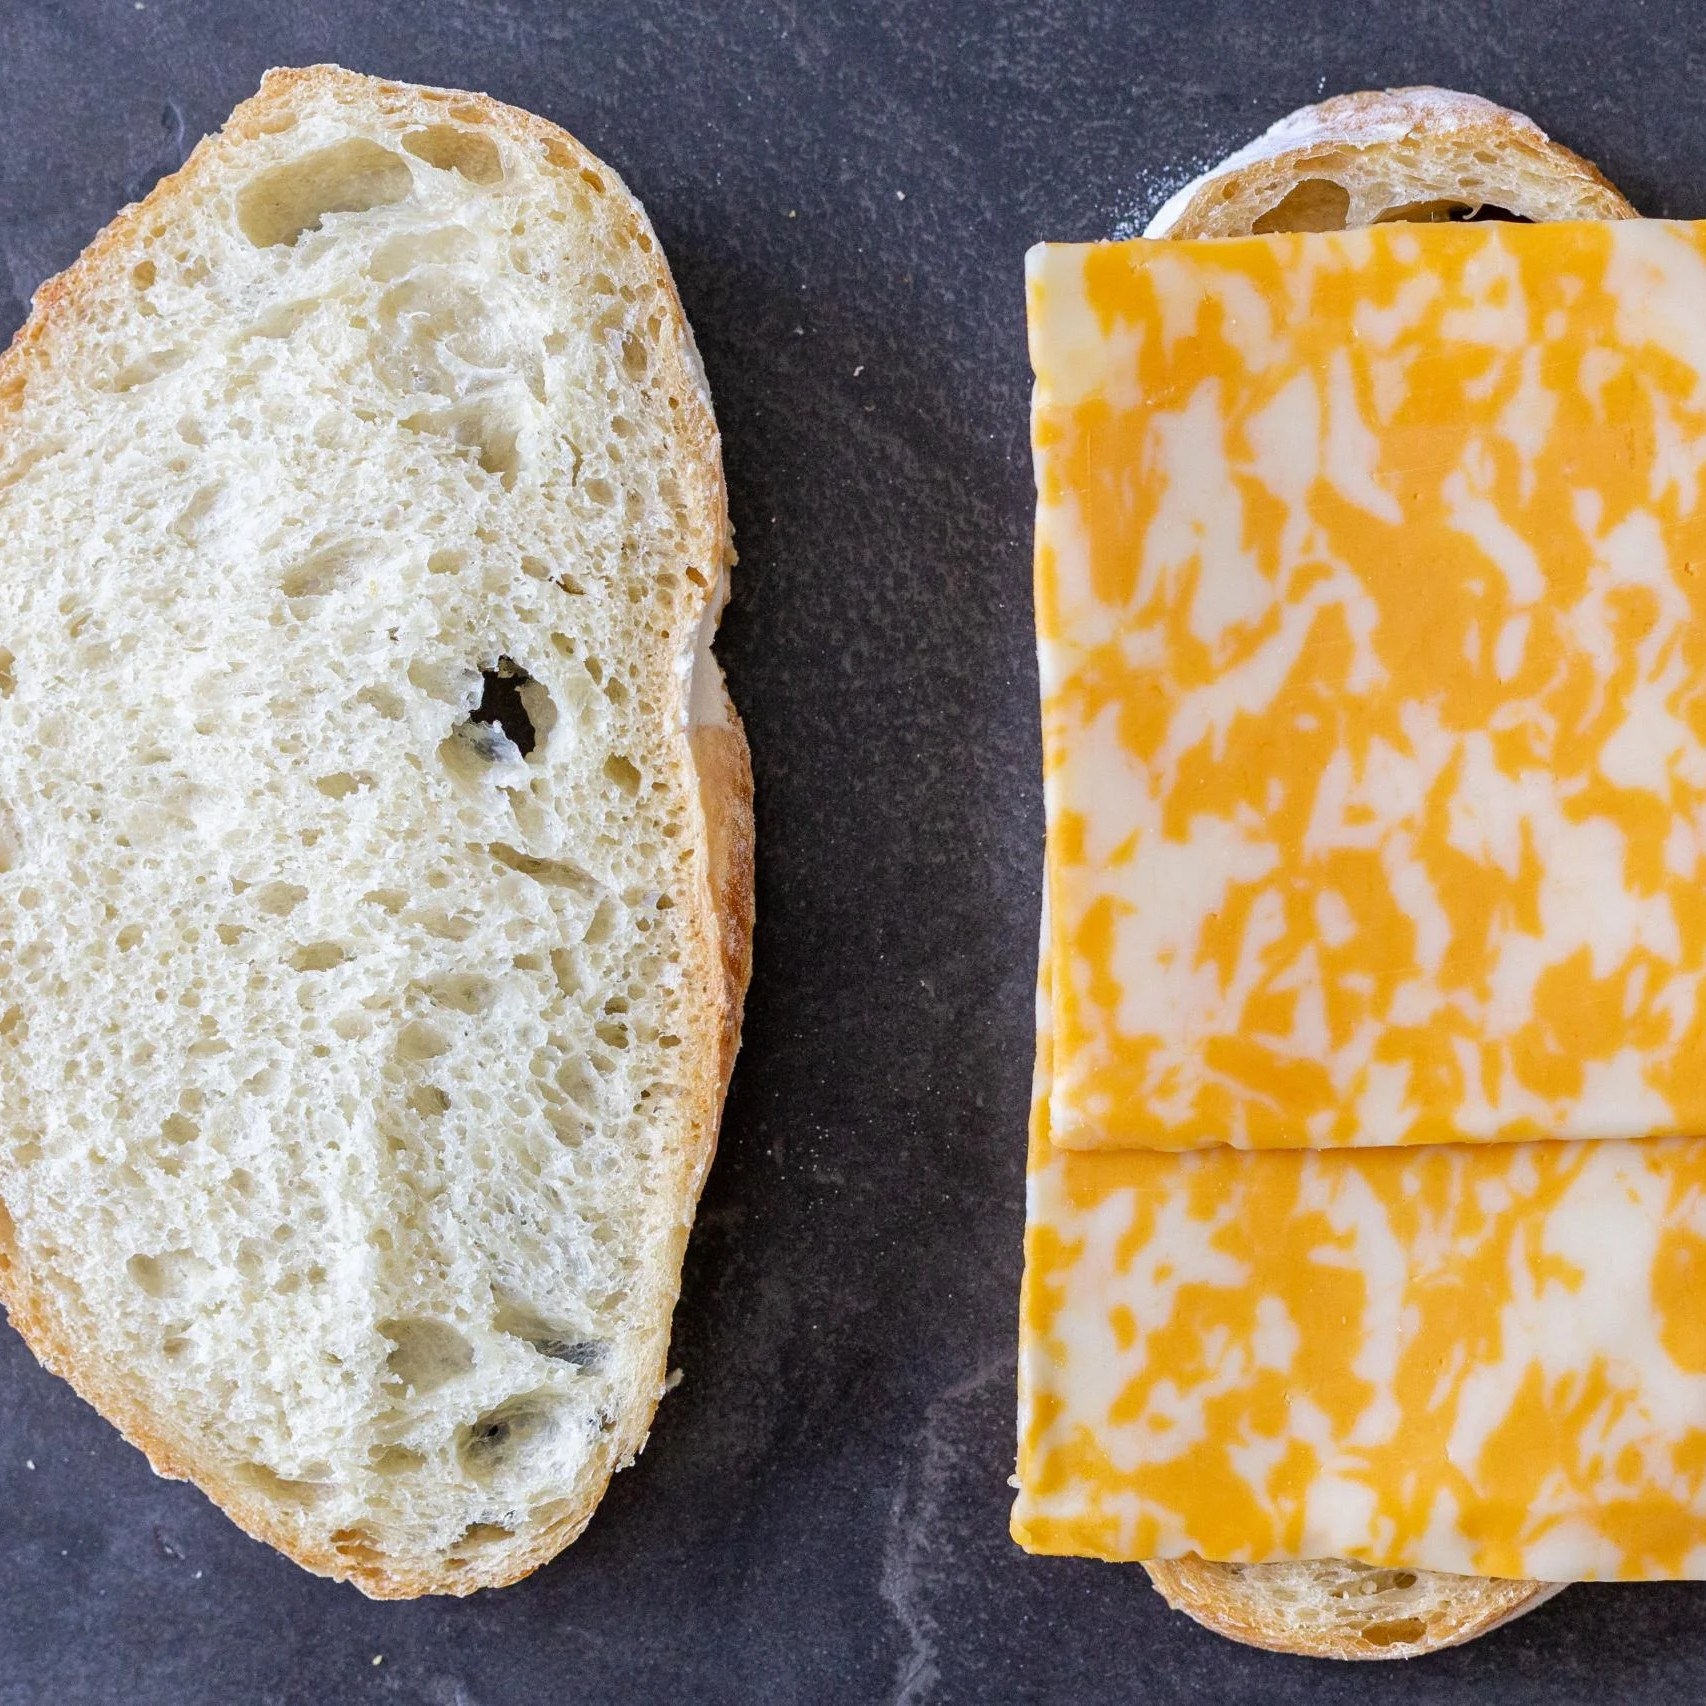 bread with slices of cheese